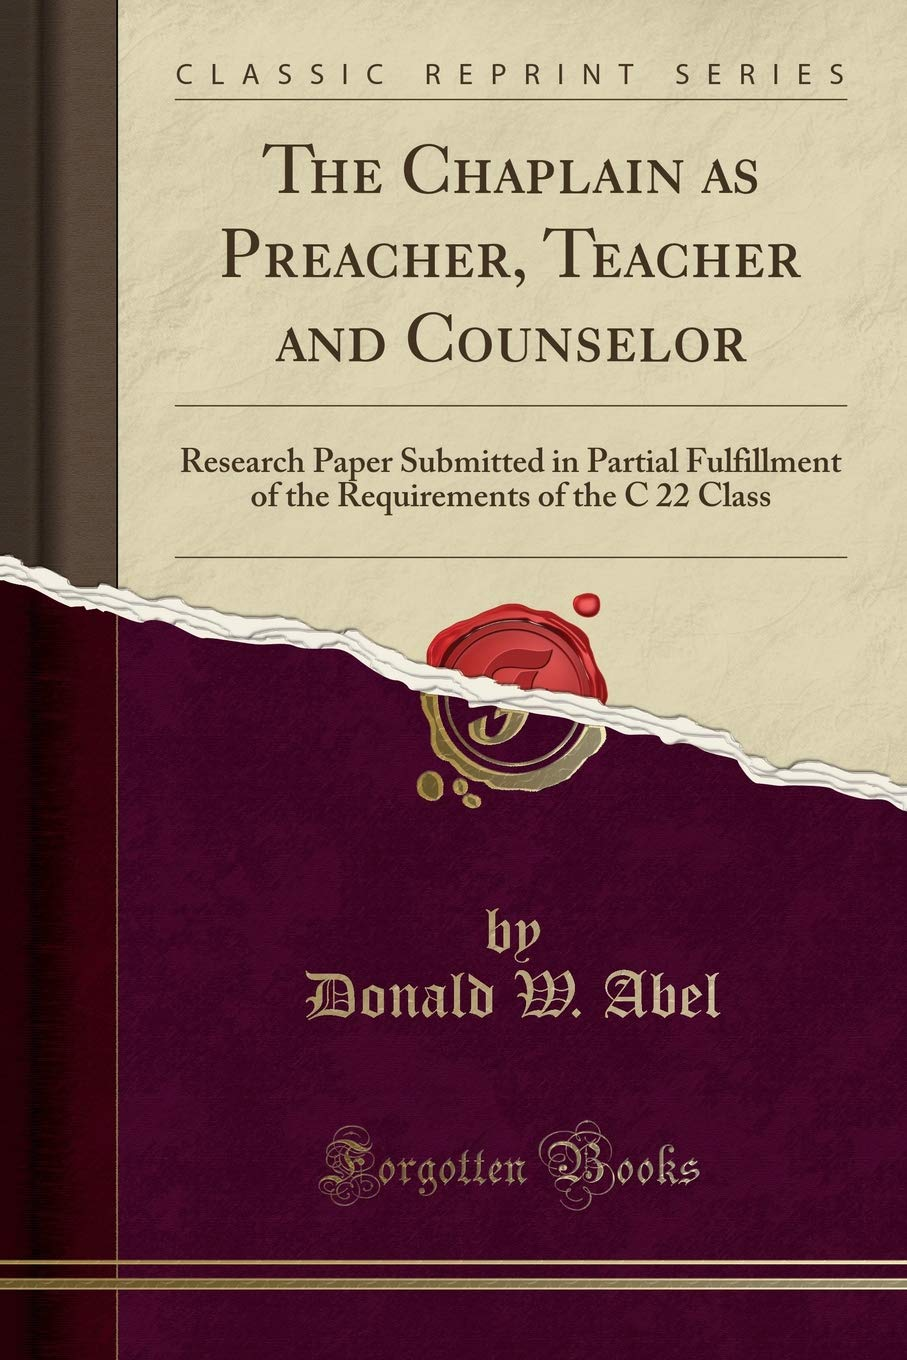 Download The Chaplain as Preacher, Teacher and Counselor: Research Paper Submitted in Partial Fulfillment of the Requirements of the C 22 Class (Classic Reprint) PDF